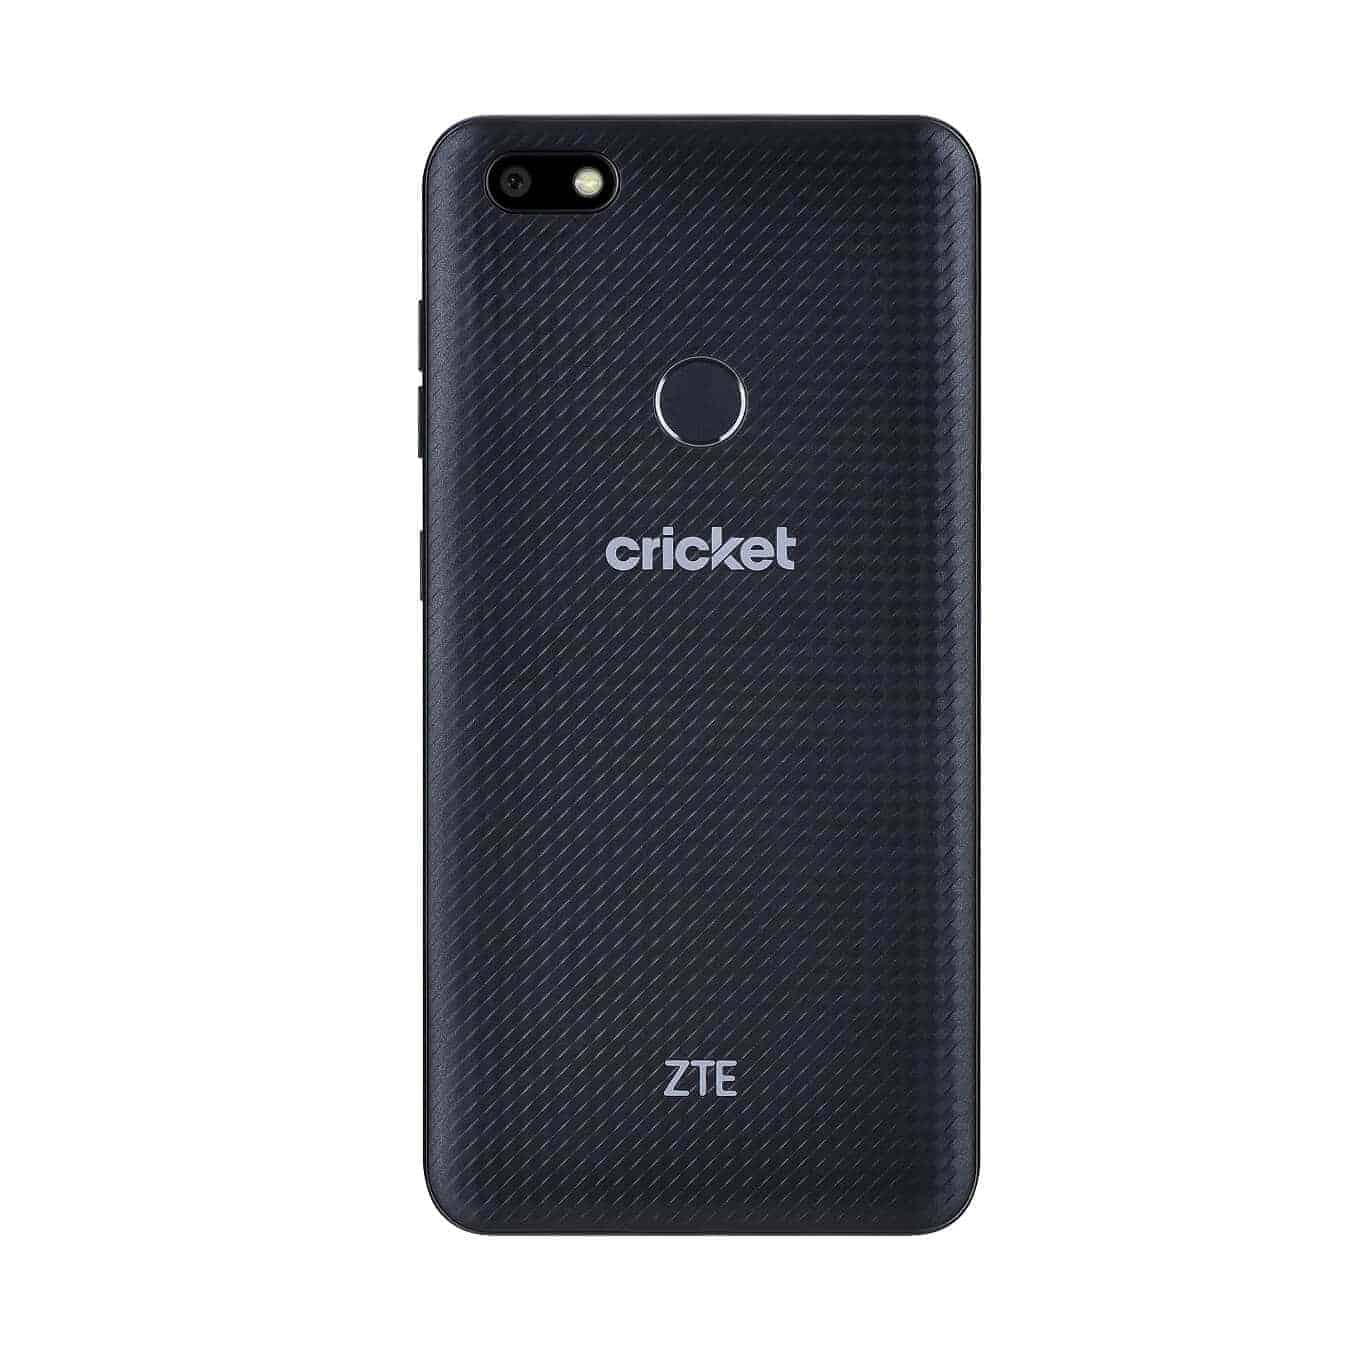 C cricket phones for sale existing customers - Shop Related Products